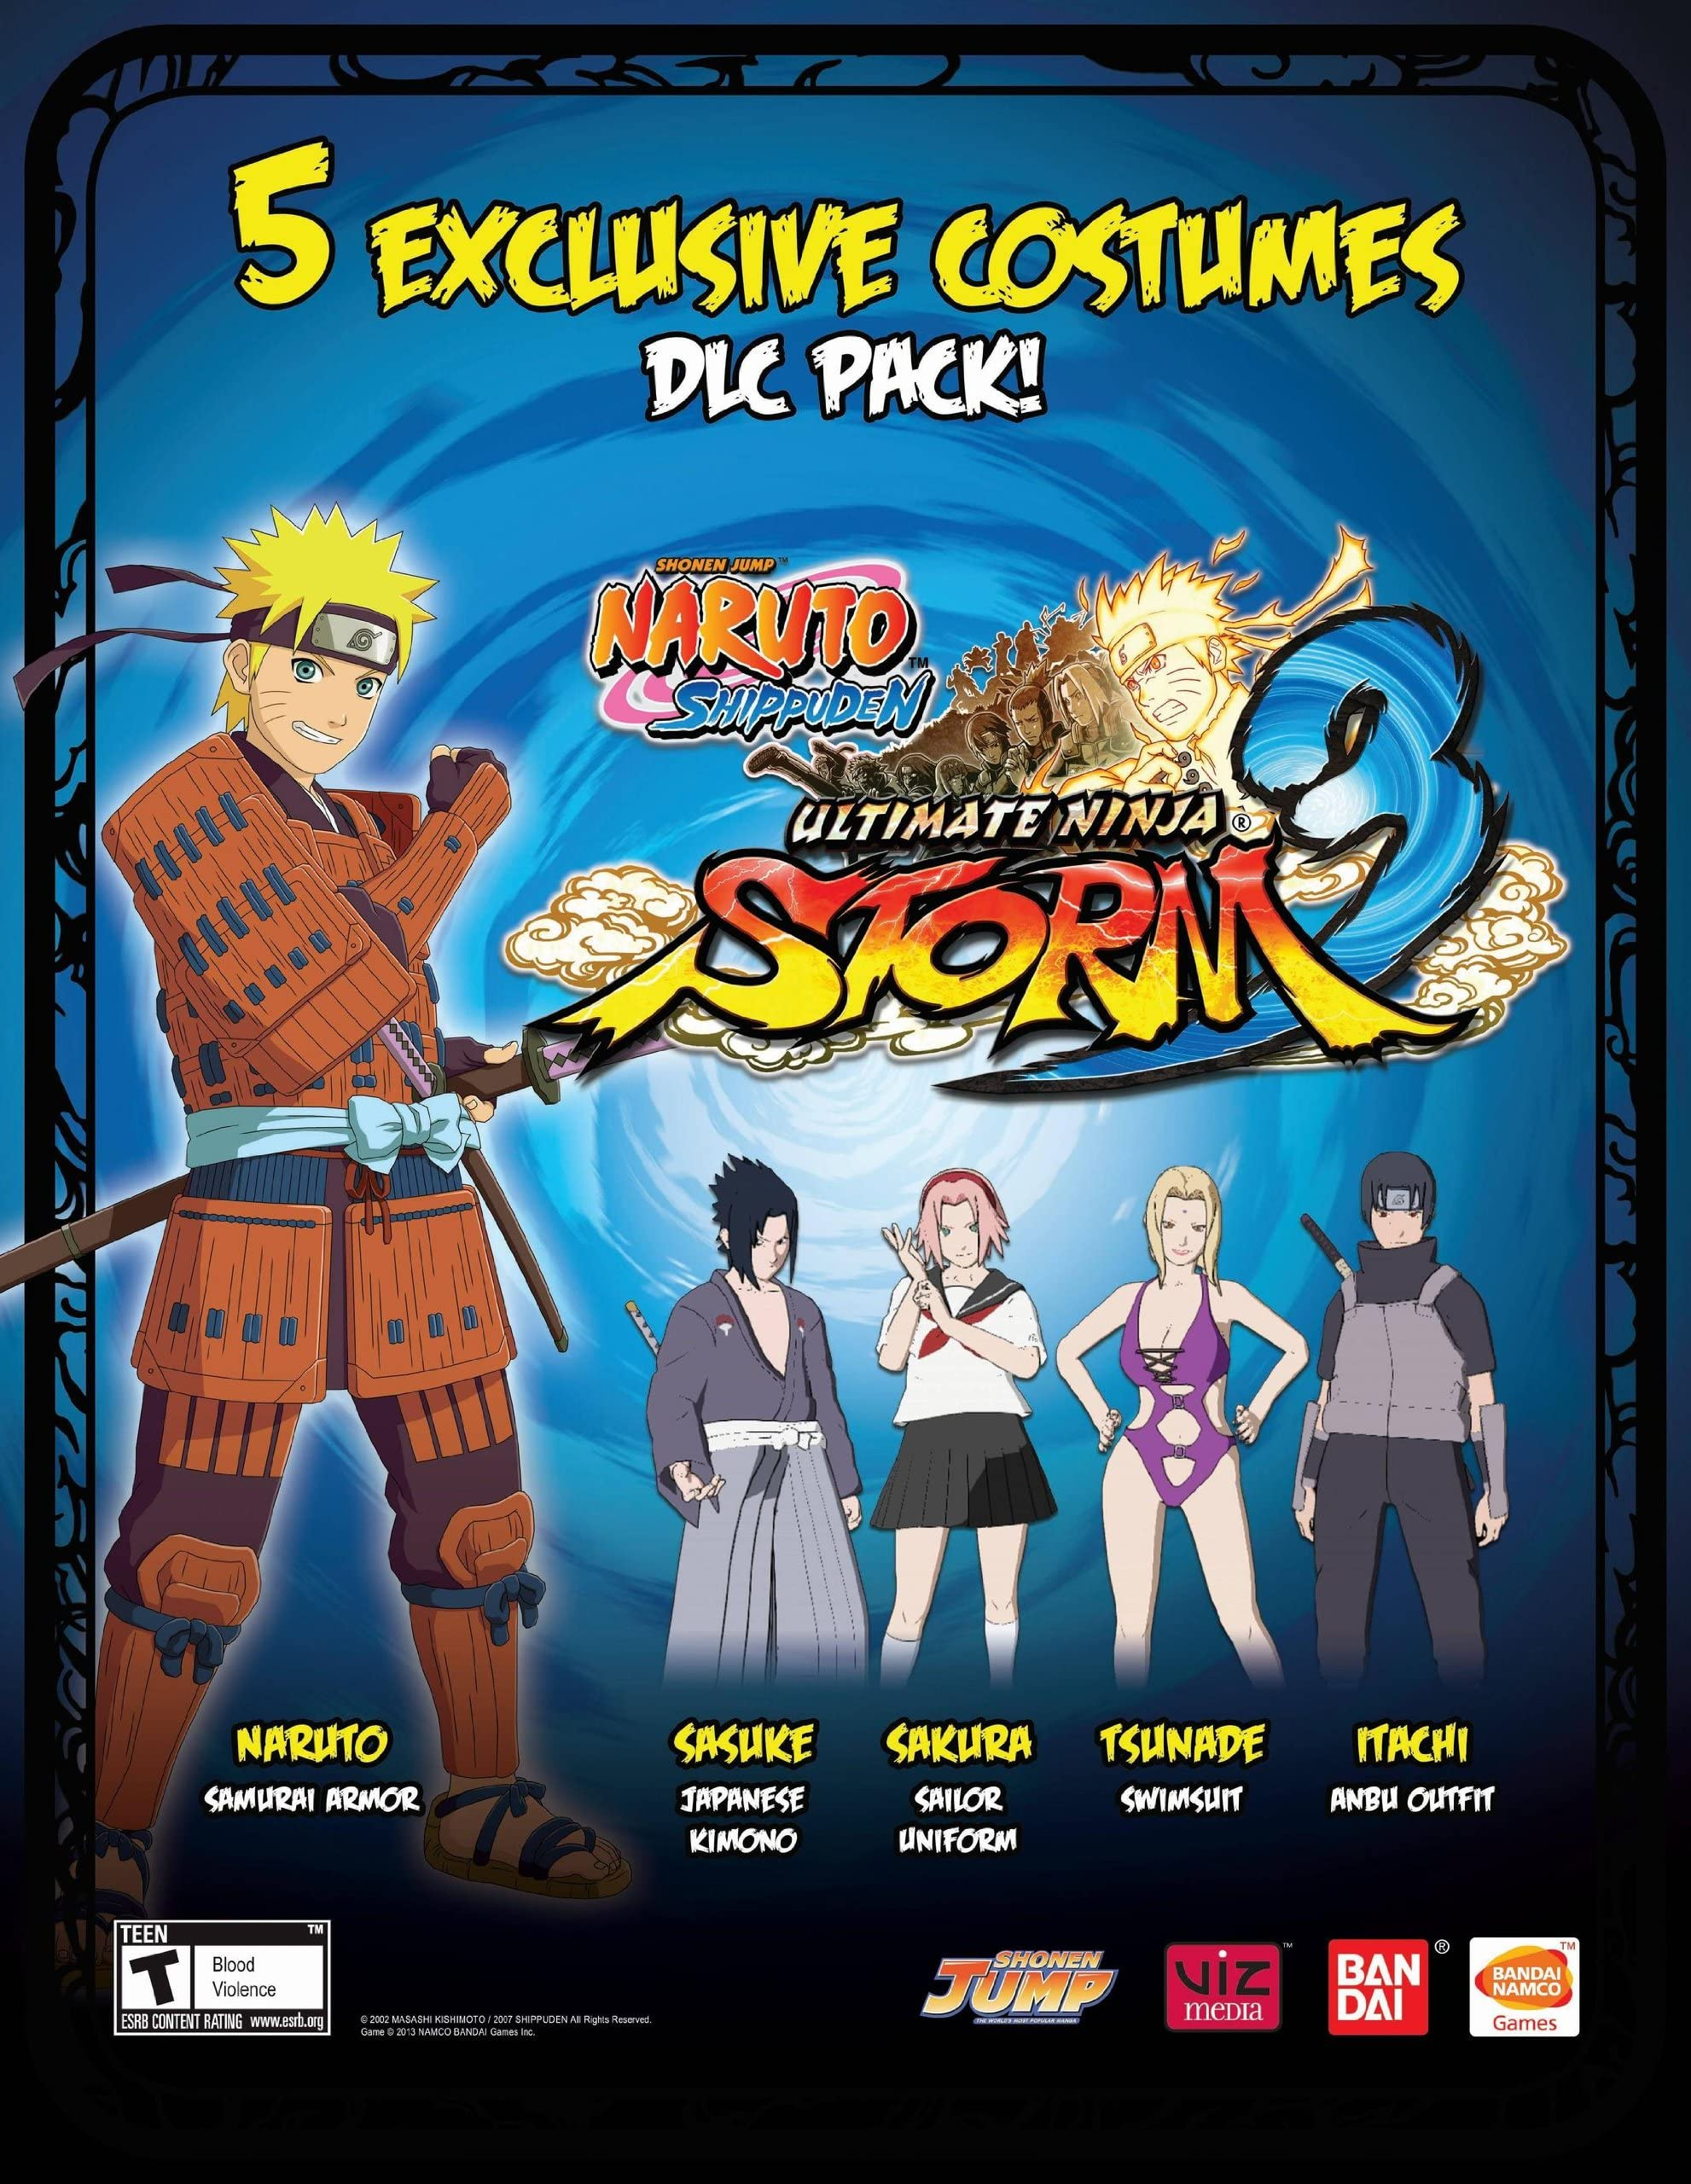 Amazon.com: Naruto Shippuden : Ultimate Ninja Storm 3 - 5 ...